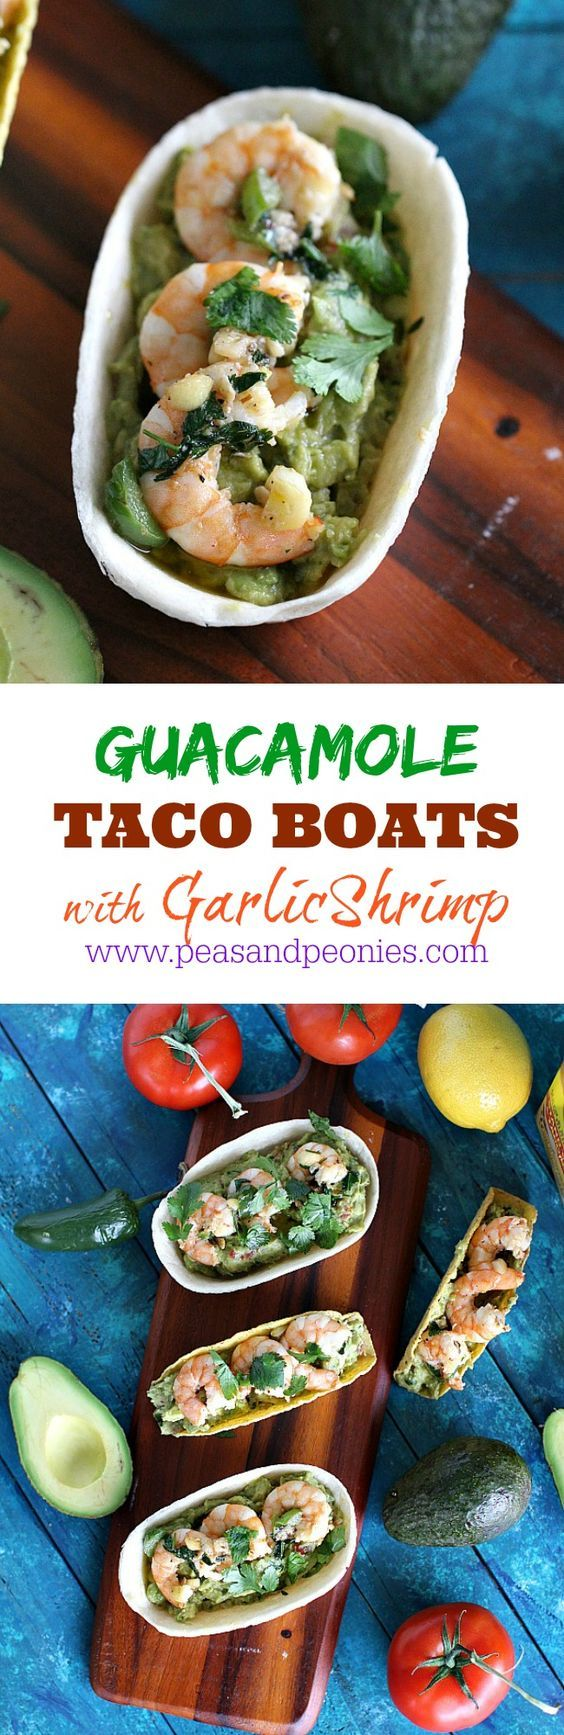 Guacamole Taco Boats with Shrimp - Peas and Peonies